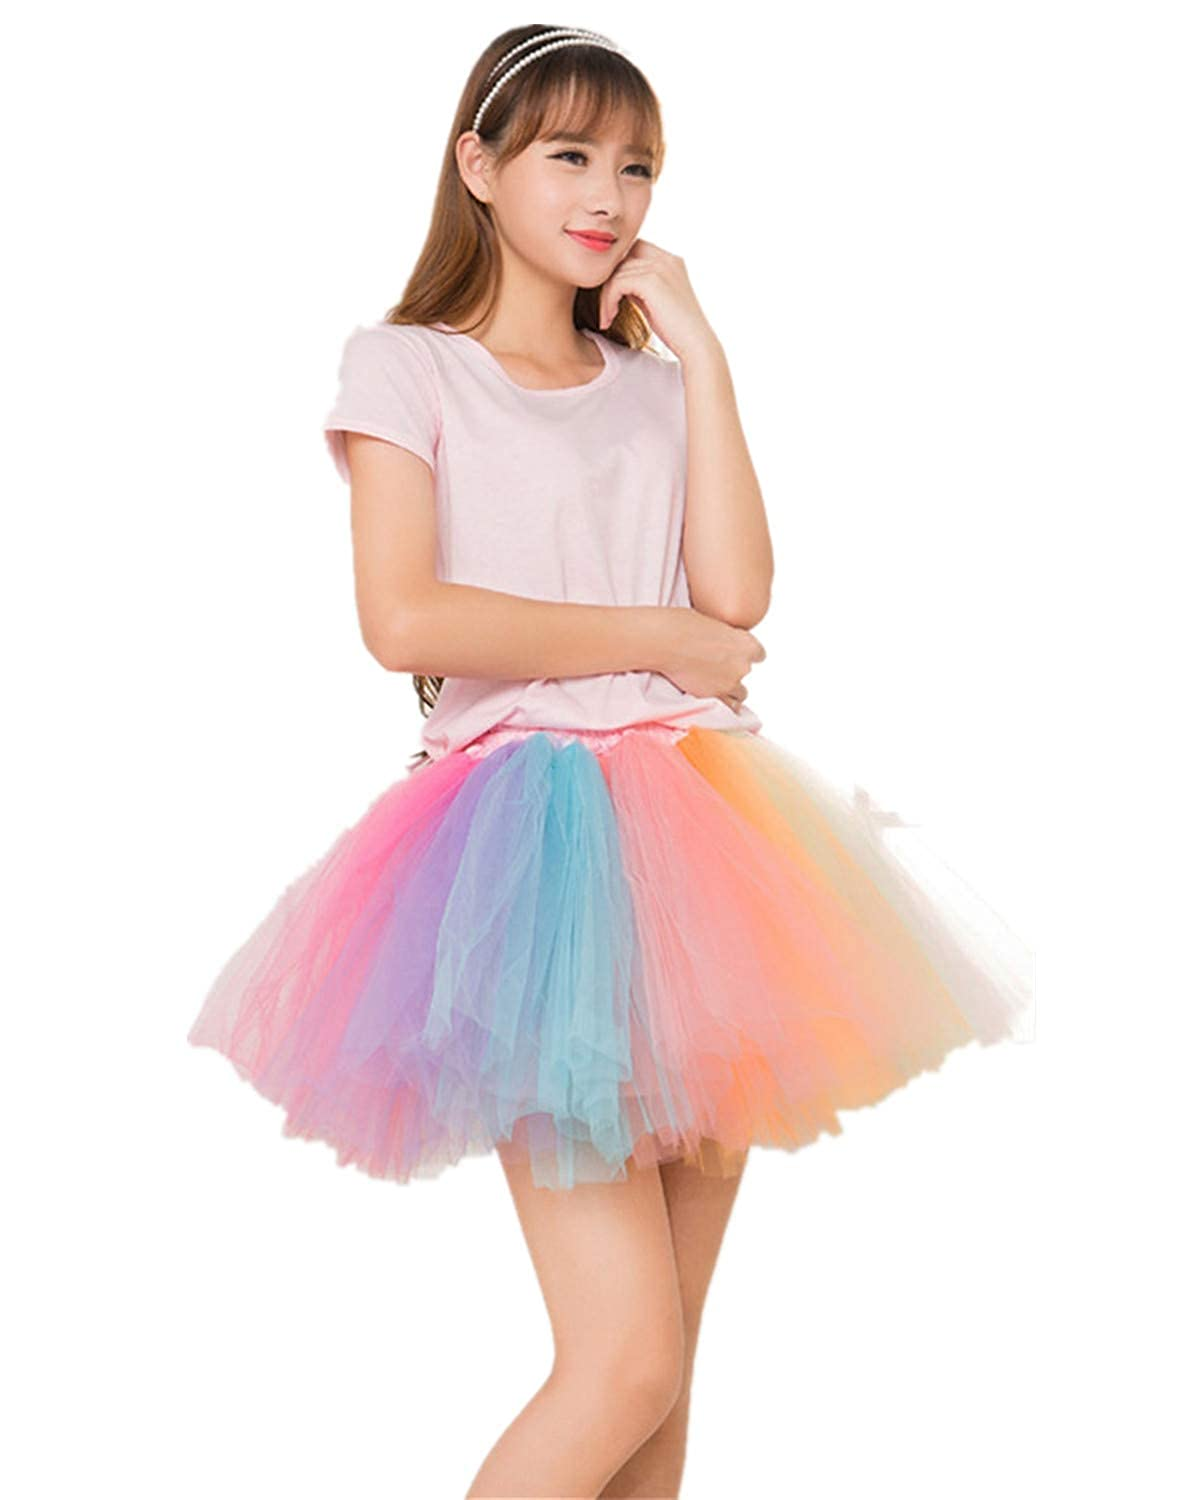 9d8c4fc811 The Womens Soild Color Tutu Skirt Layered Tulle Skirt Adult Halloween  Costumes can perfect for any occasions, dress-up, parties, school events,  ...